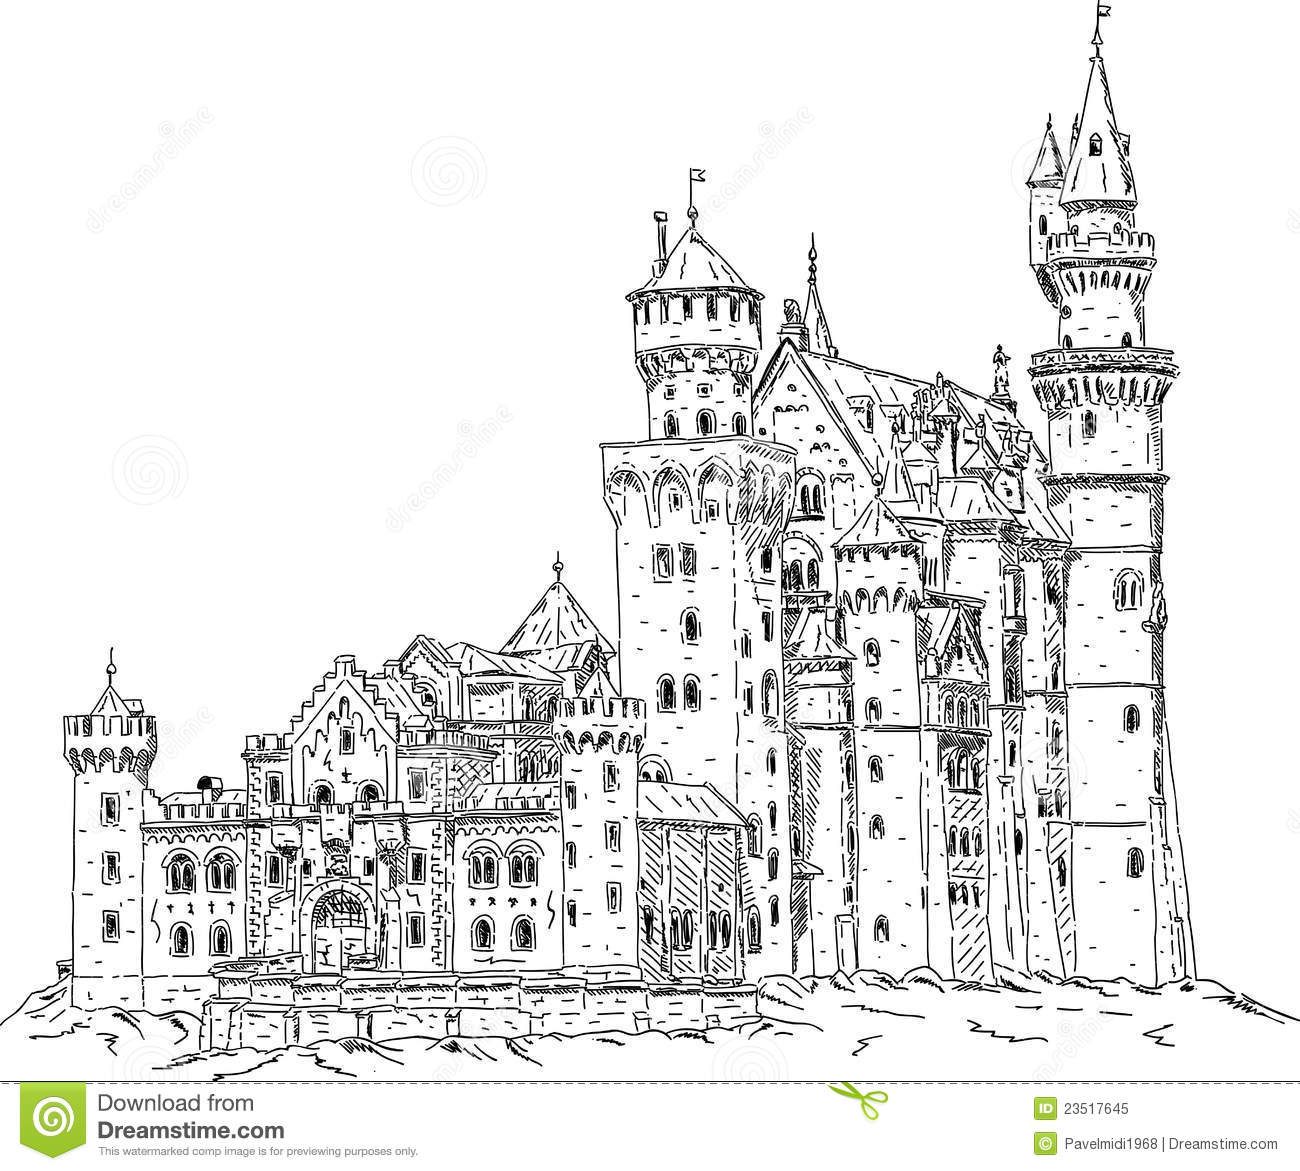 Neuschwanstein castle clipart #16